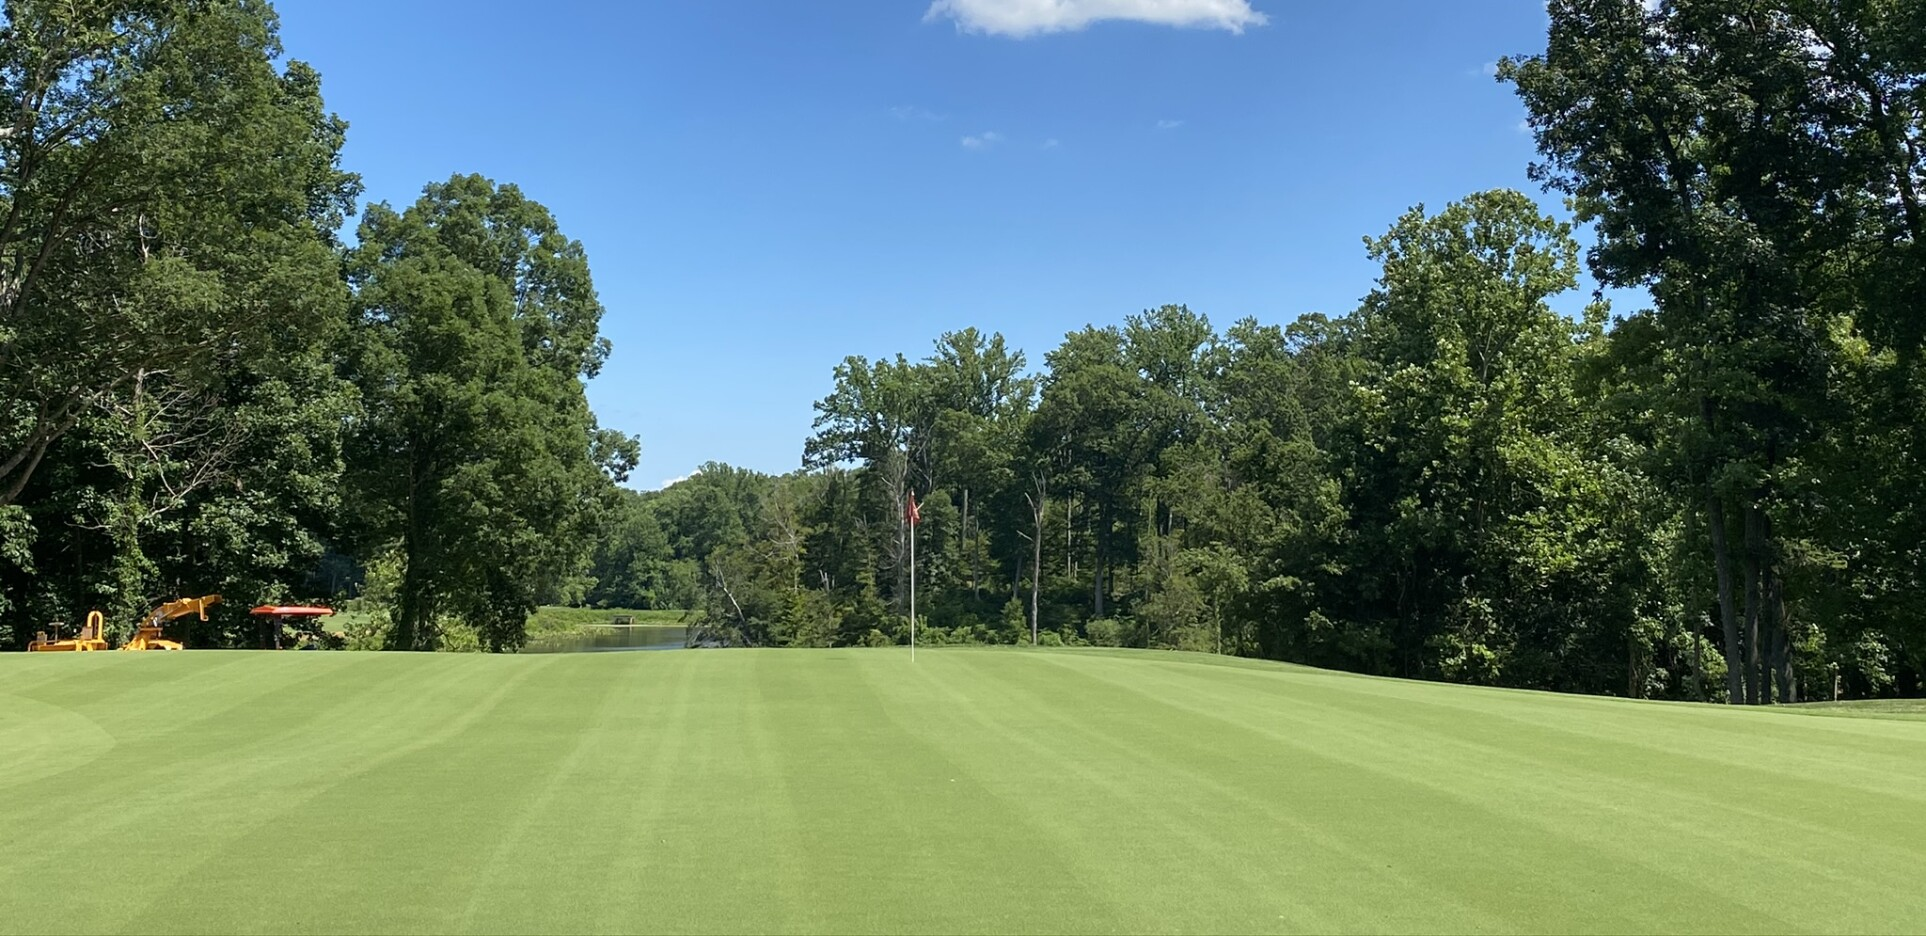 The 2nd green after a mow during the renovation of The Preserve at Eisenhower Golf Club